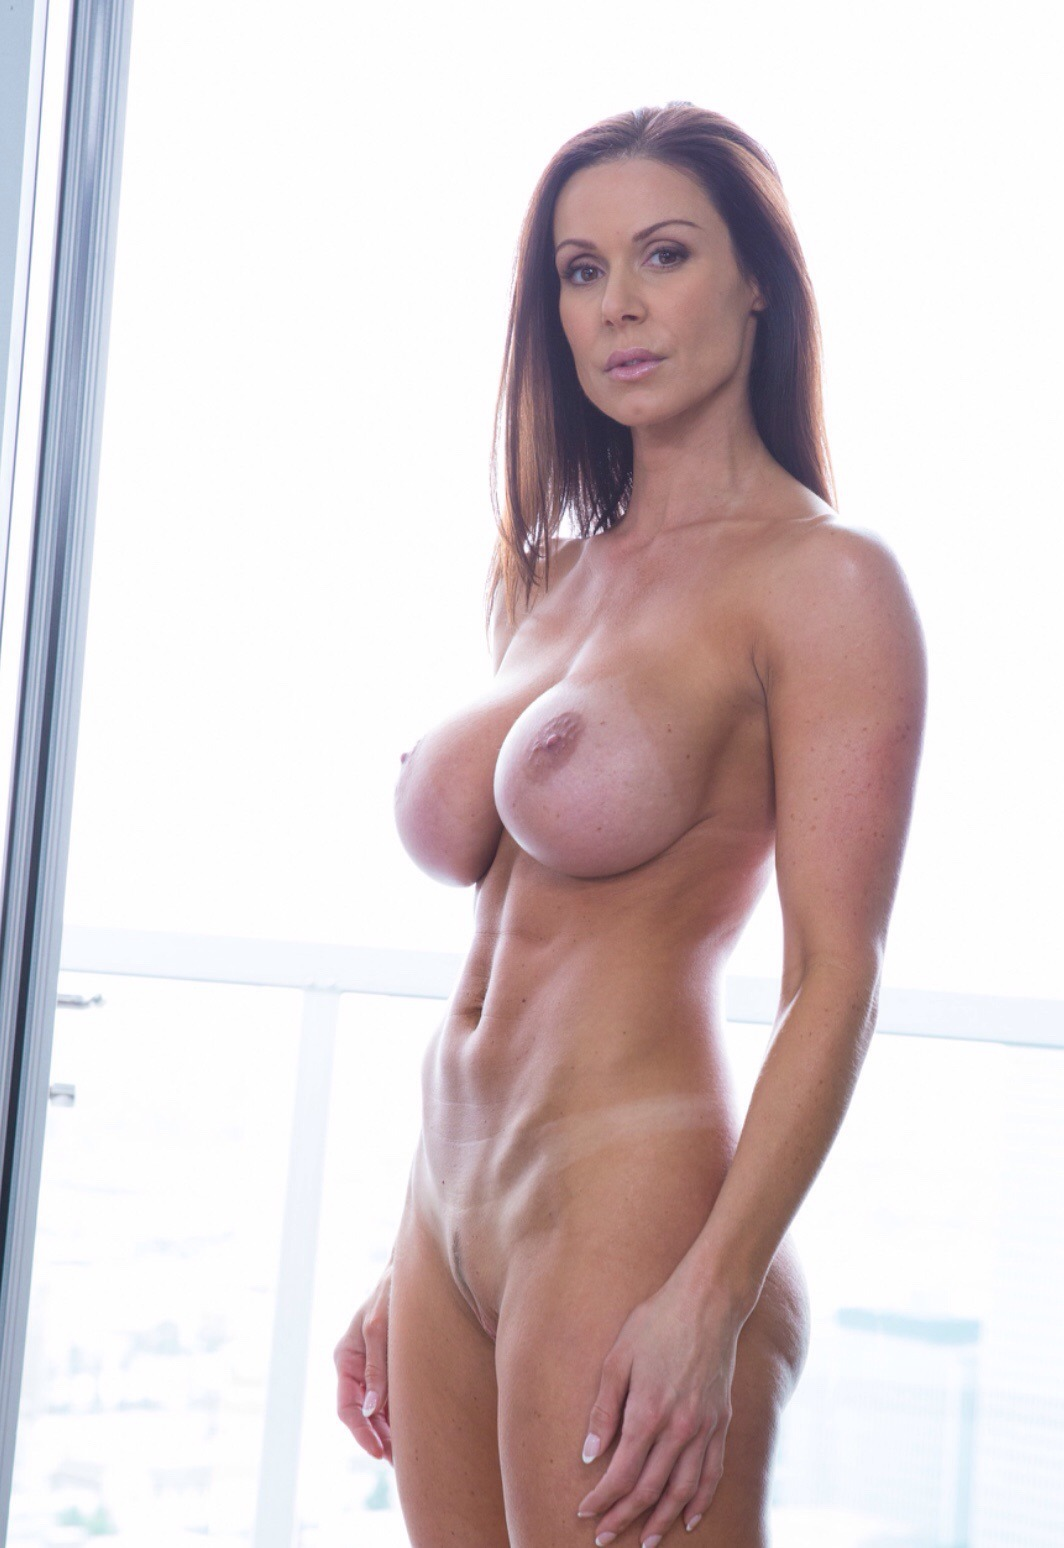 nude i dream of jeanie tubes divas fucking videos Armoverhead, Braless, Brunette, Hardbody, Hardnipple, Lowcutjeans, Myahtaylor, Onetitout, Shirtopen, Toned, Unbuttoned